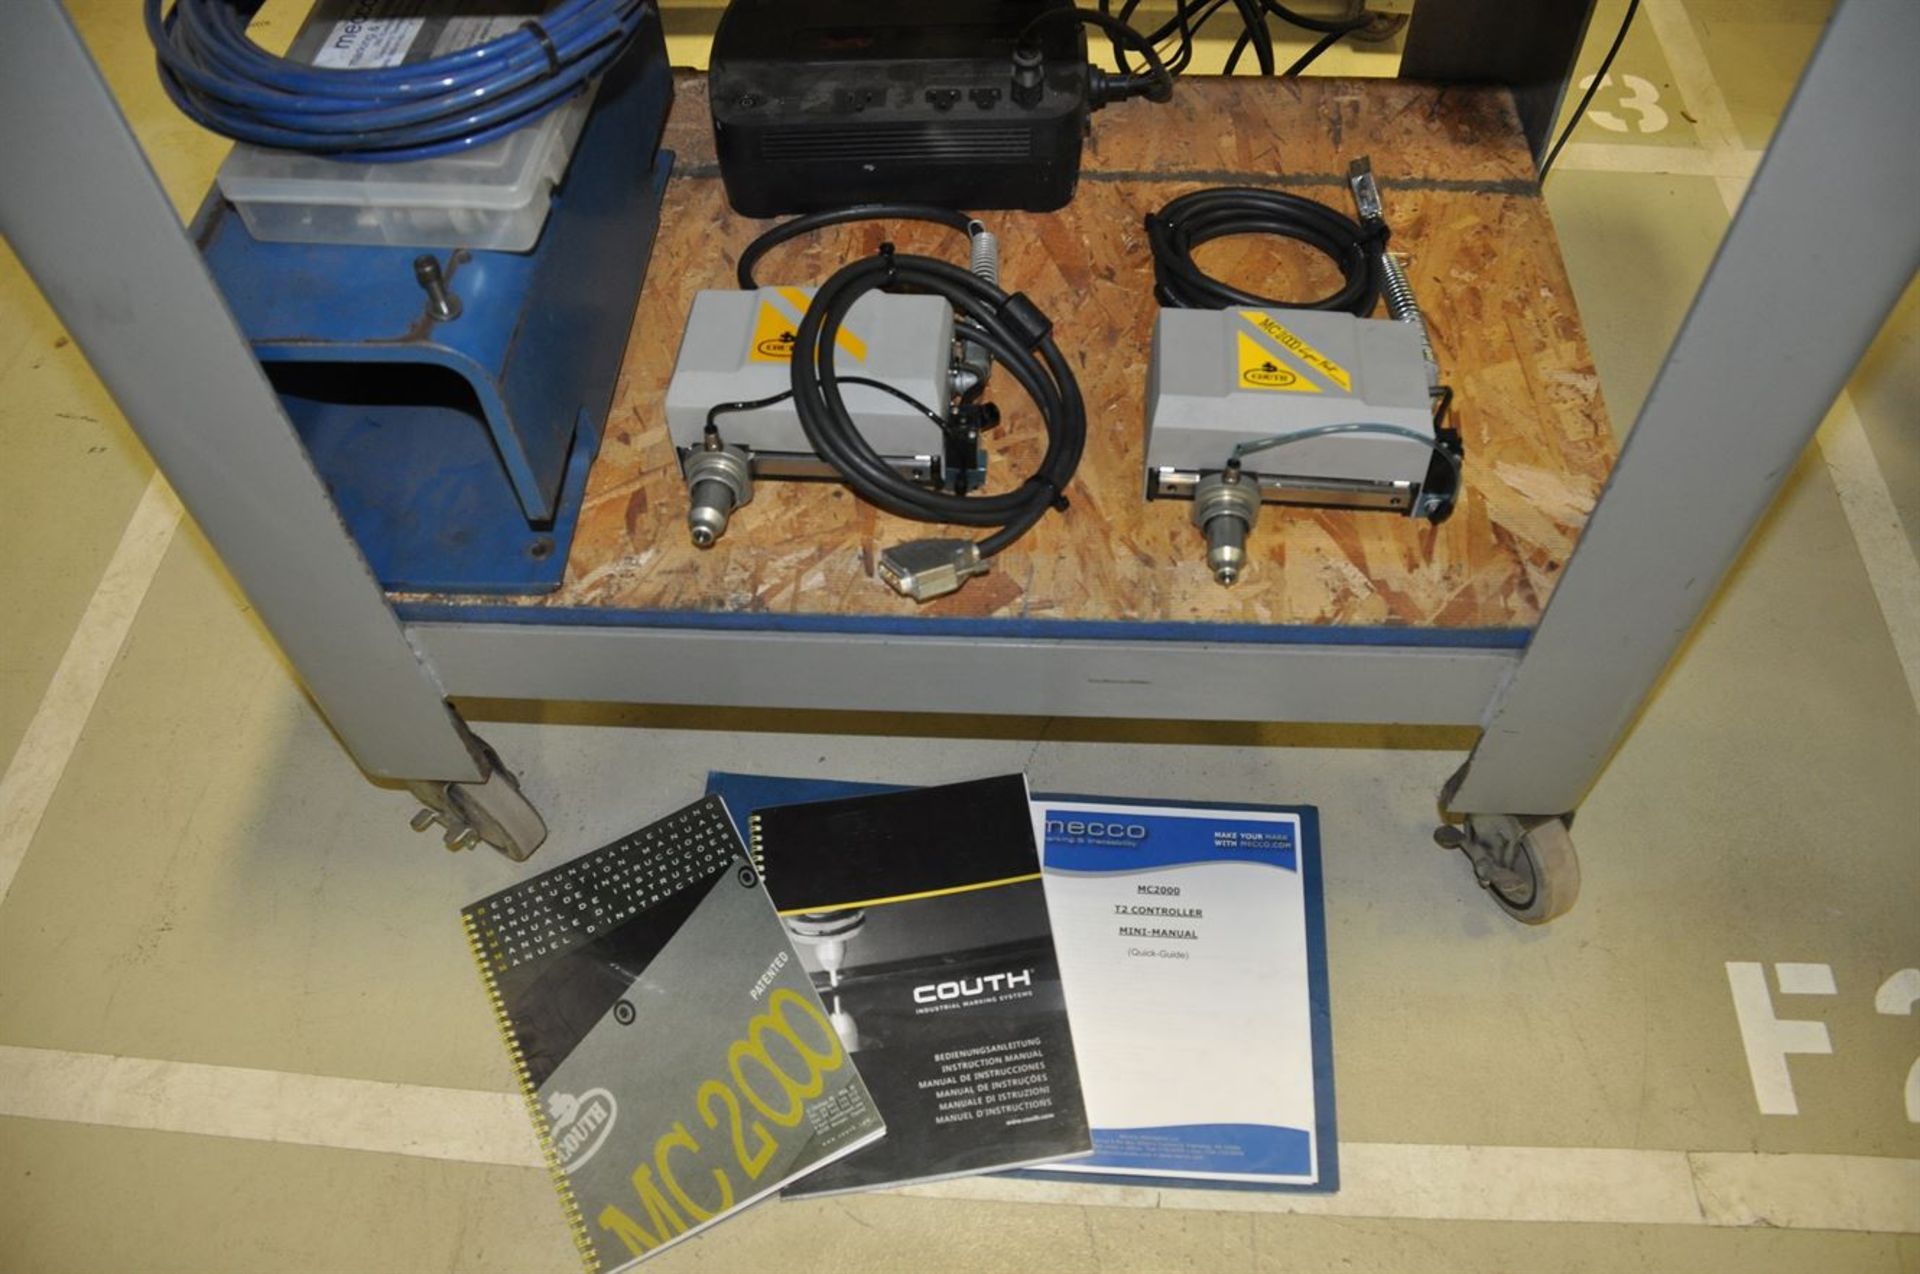 2011 MECCO MC2000 SuperFast Marking System, s/n 119982, w/ COUTH MC2000 T2 Controller, Bar Code - Image 3 of 3